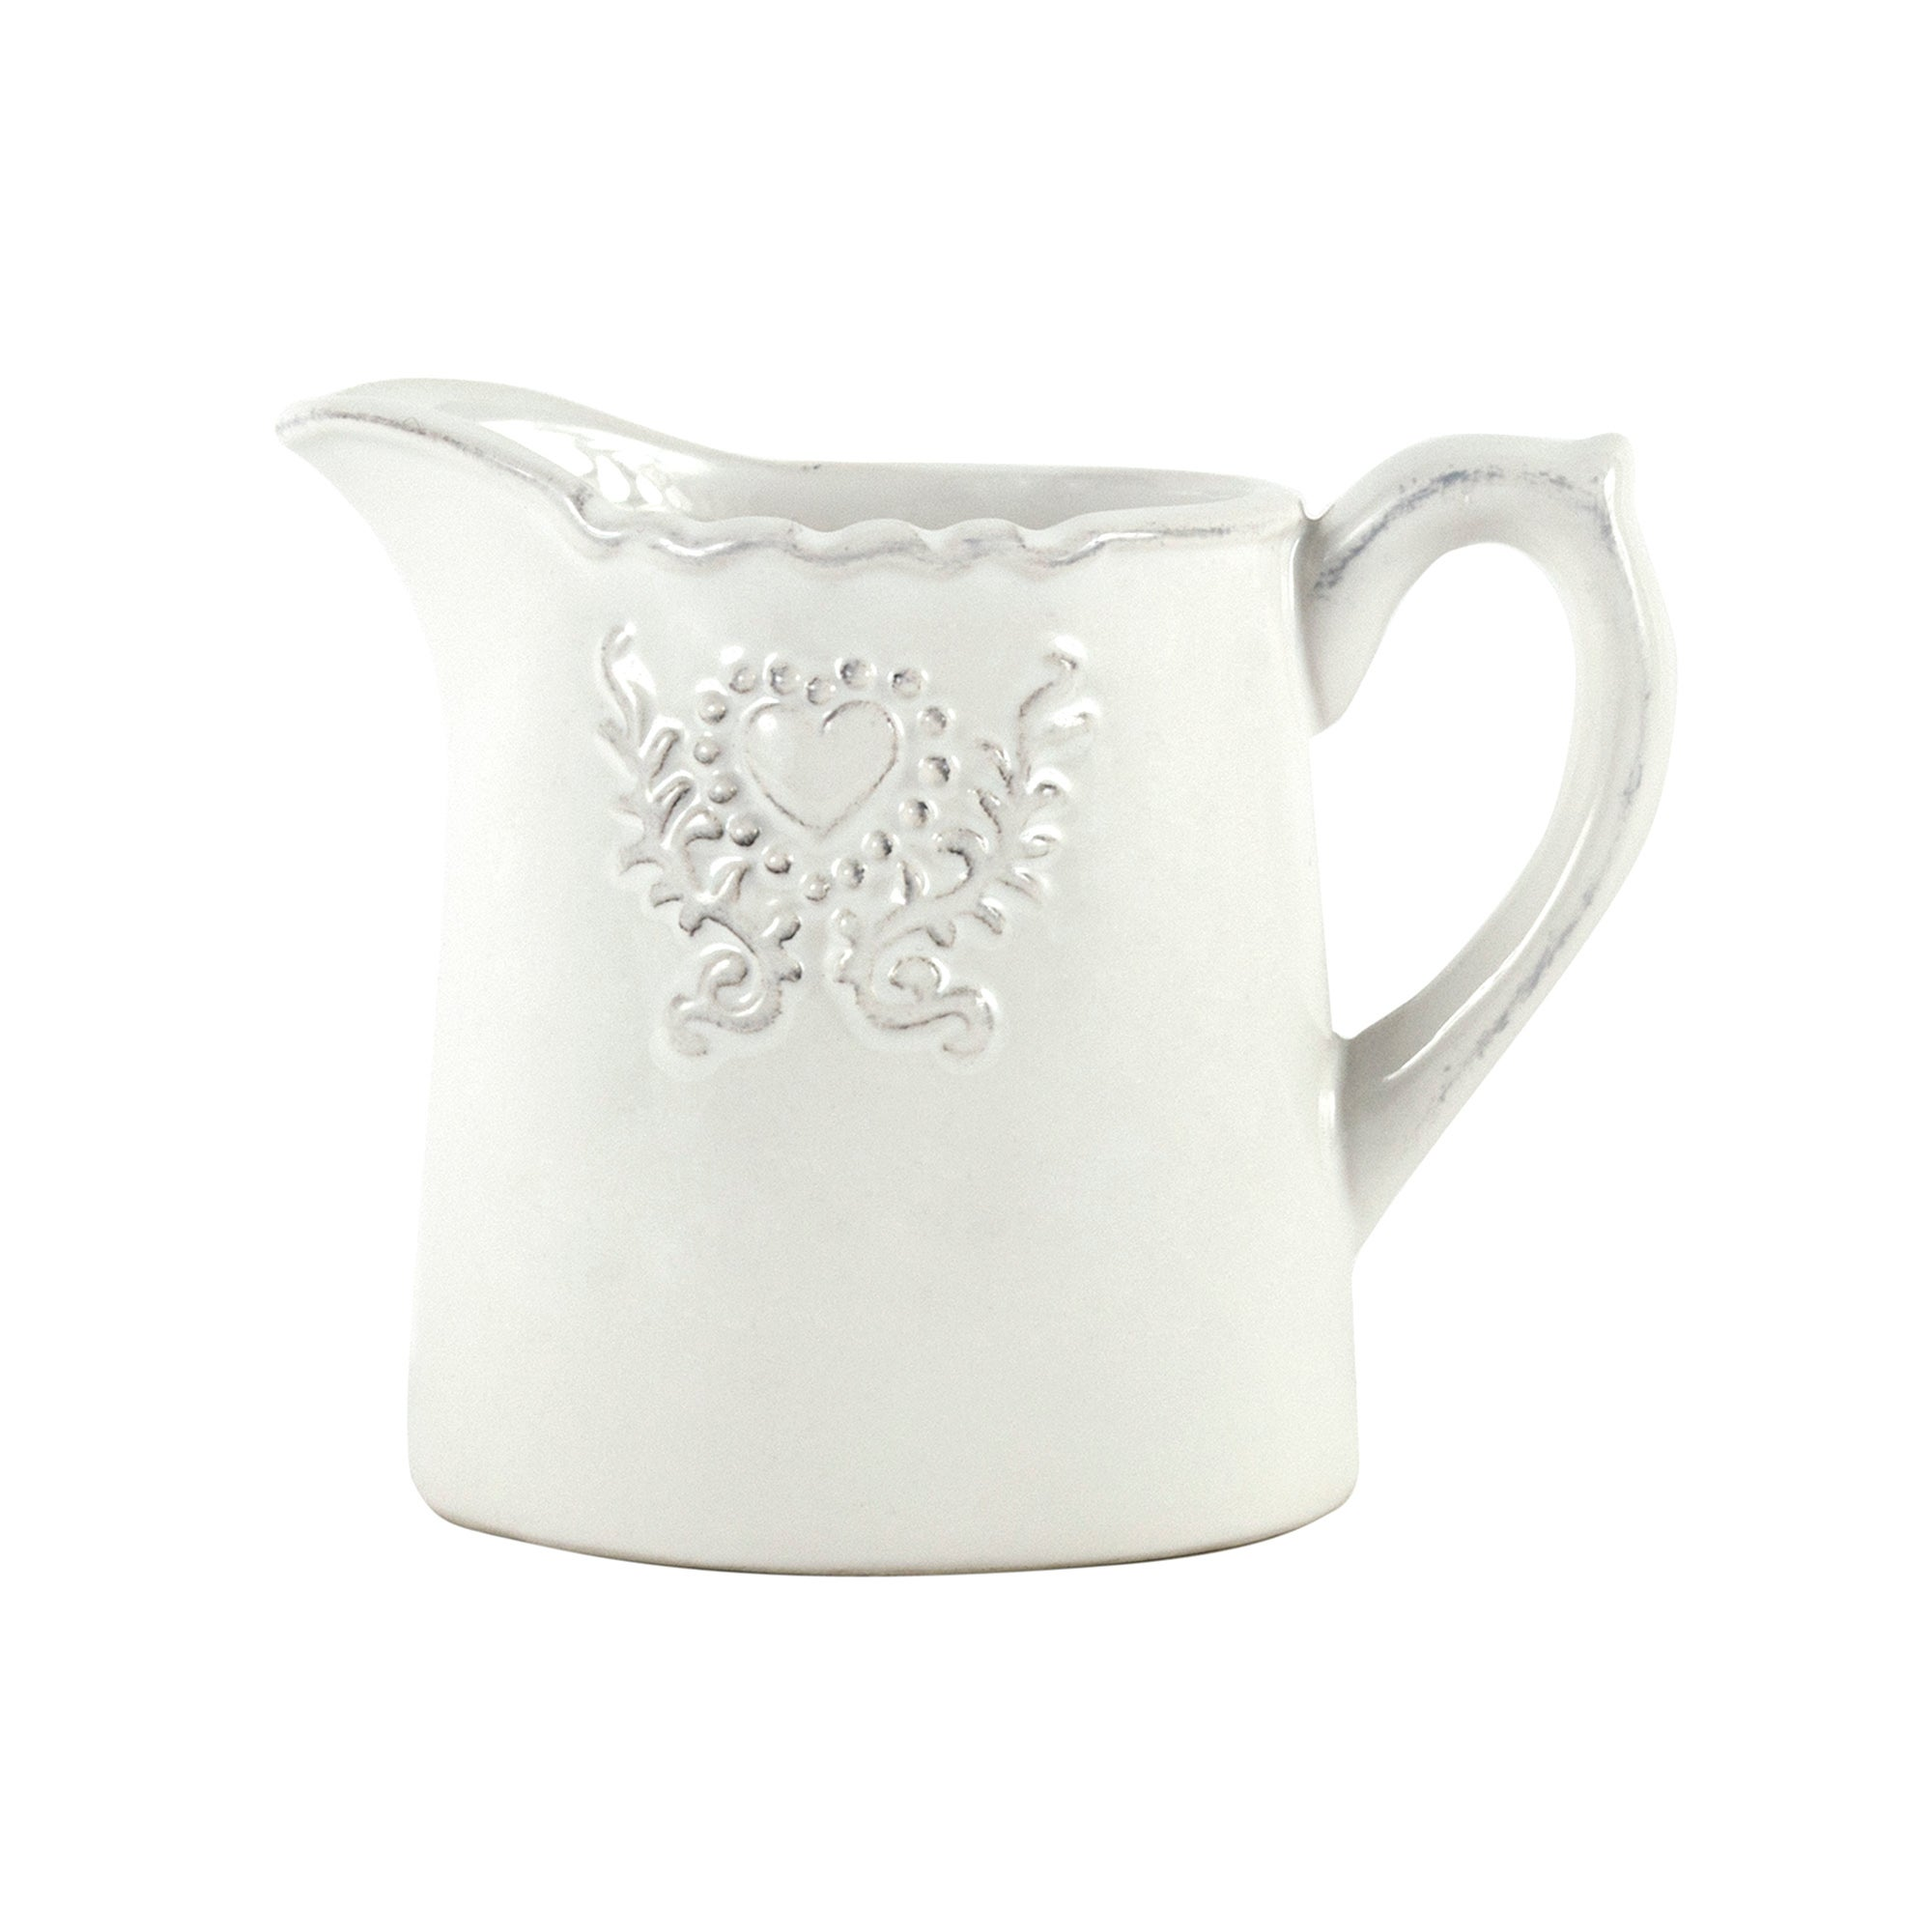 Maison Chic Mini Jug